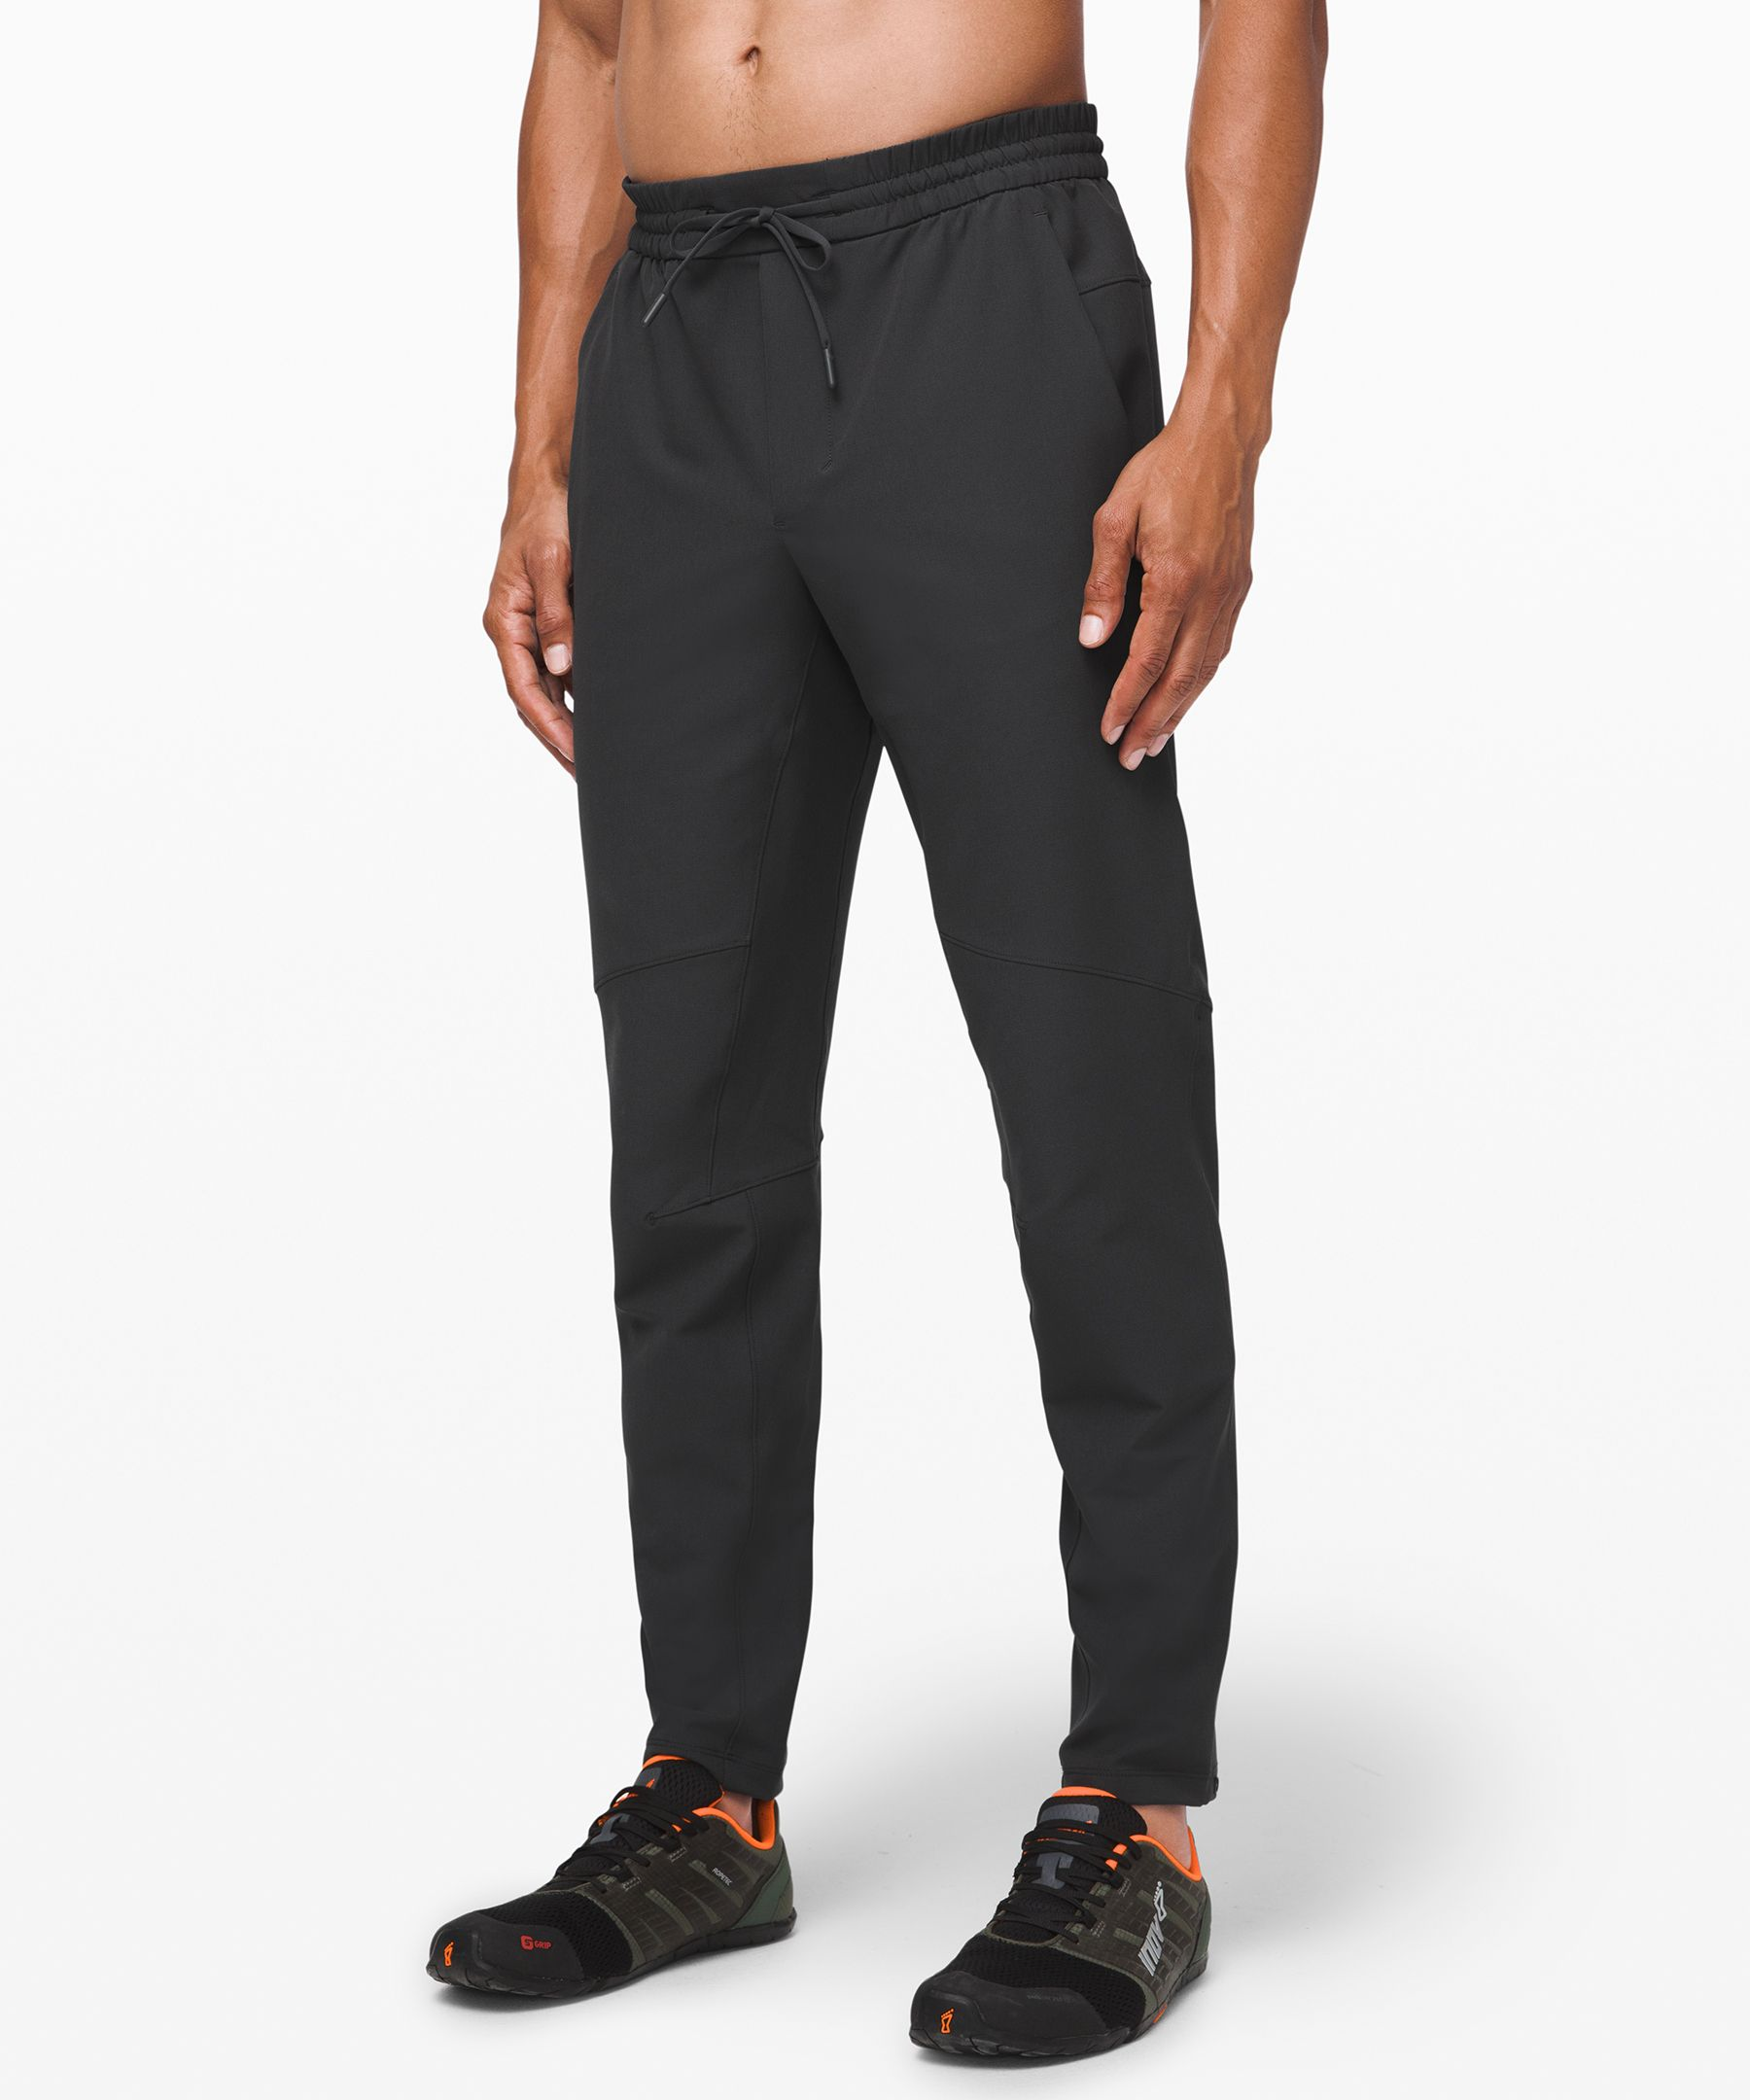 We designed these lightweight,  abrasion-resistant training  pants with sweat in mind.